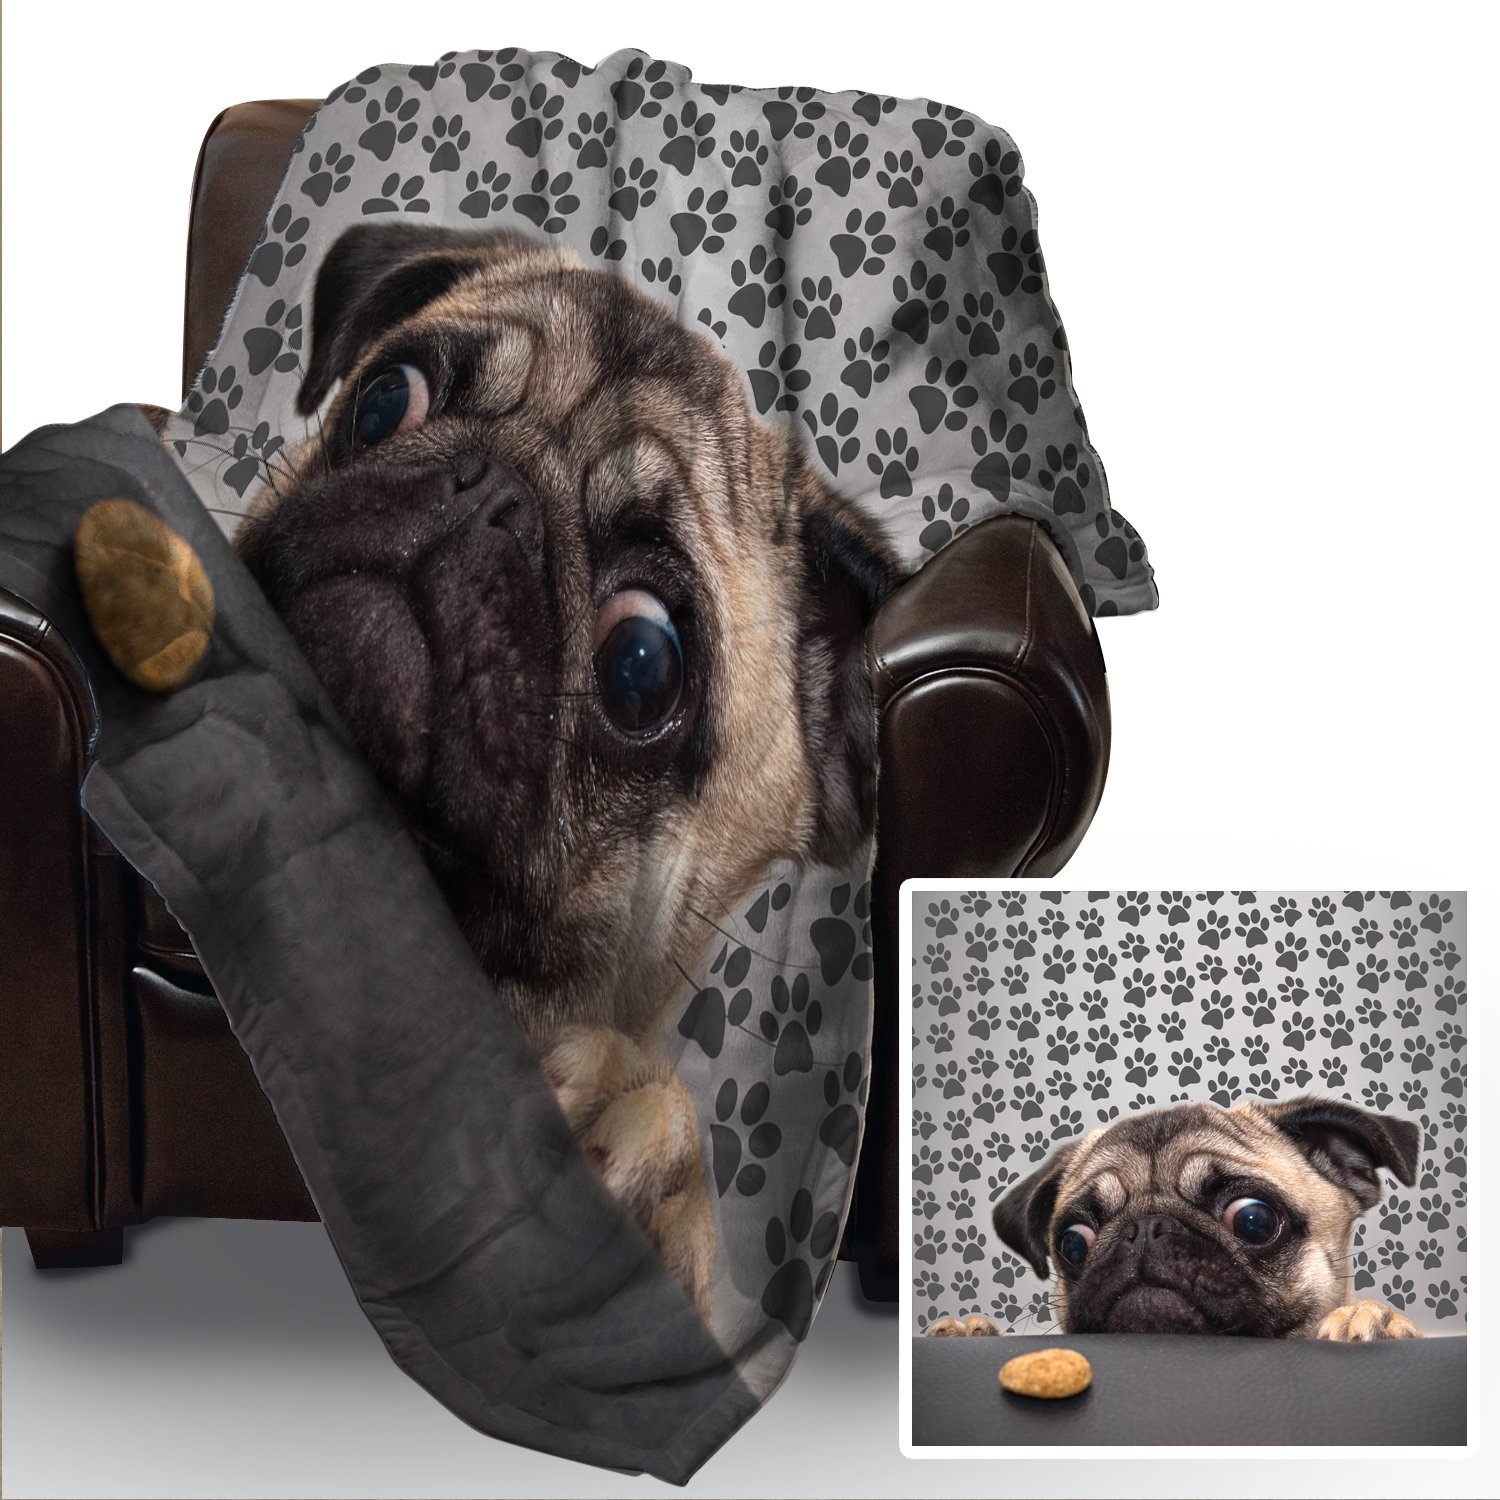 PUG DOG WITH BISCUIT DESIGN SOFT FLEECE BLANKET COVER THROW OVER